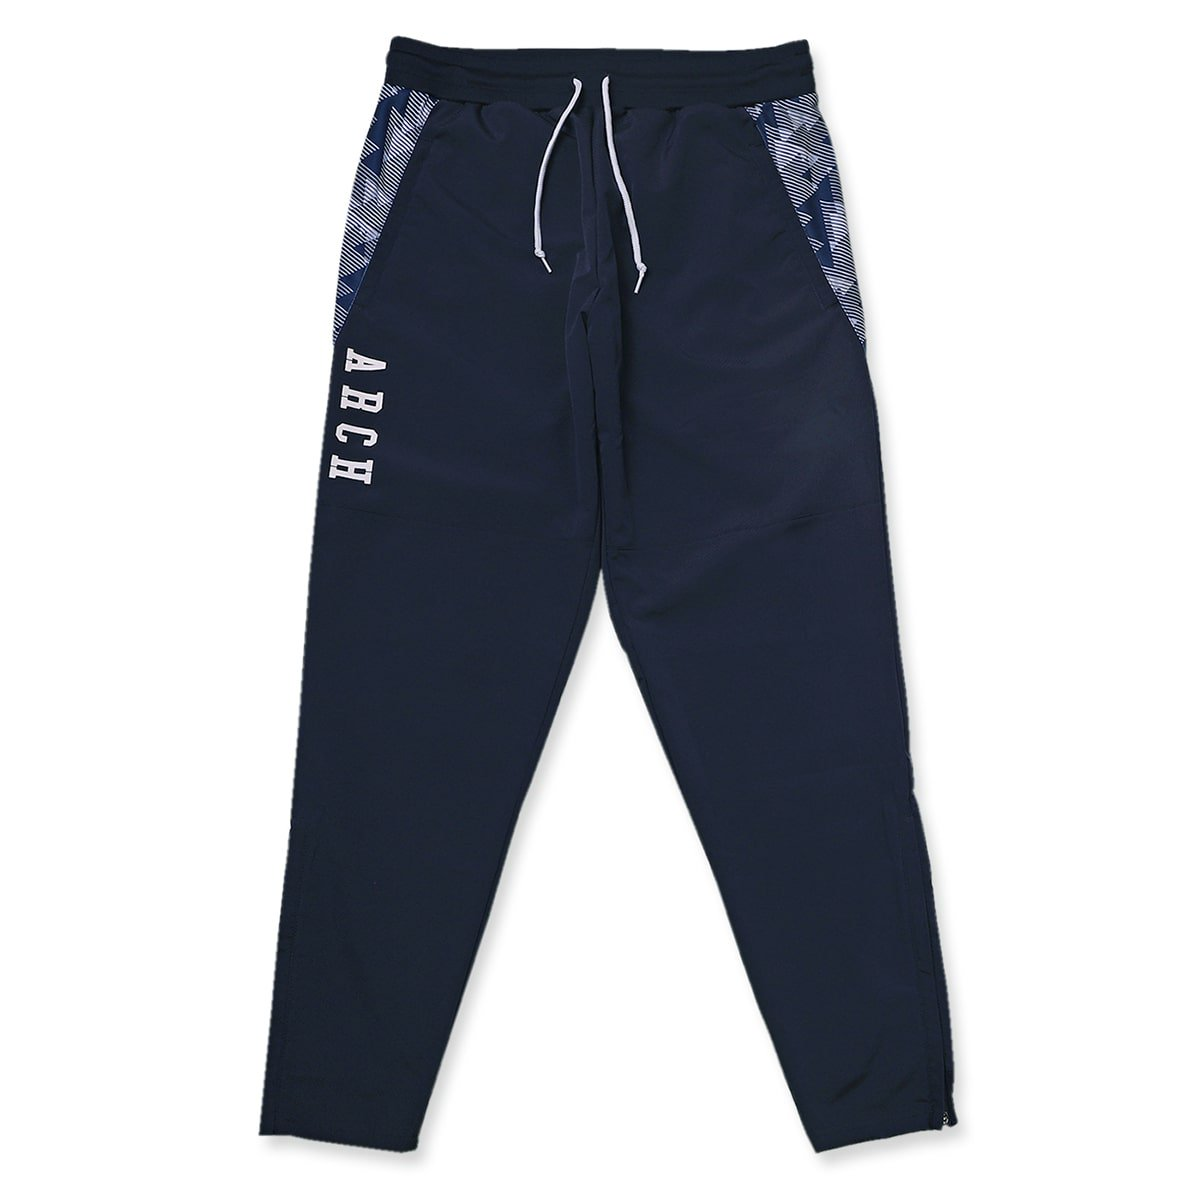 triangle native warmup pants【navy】